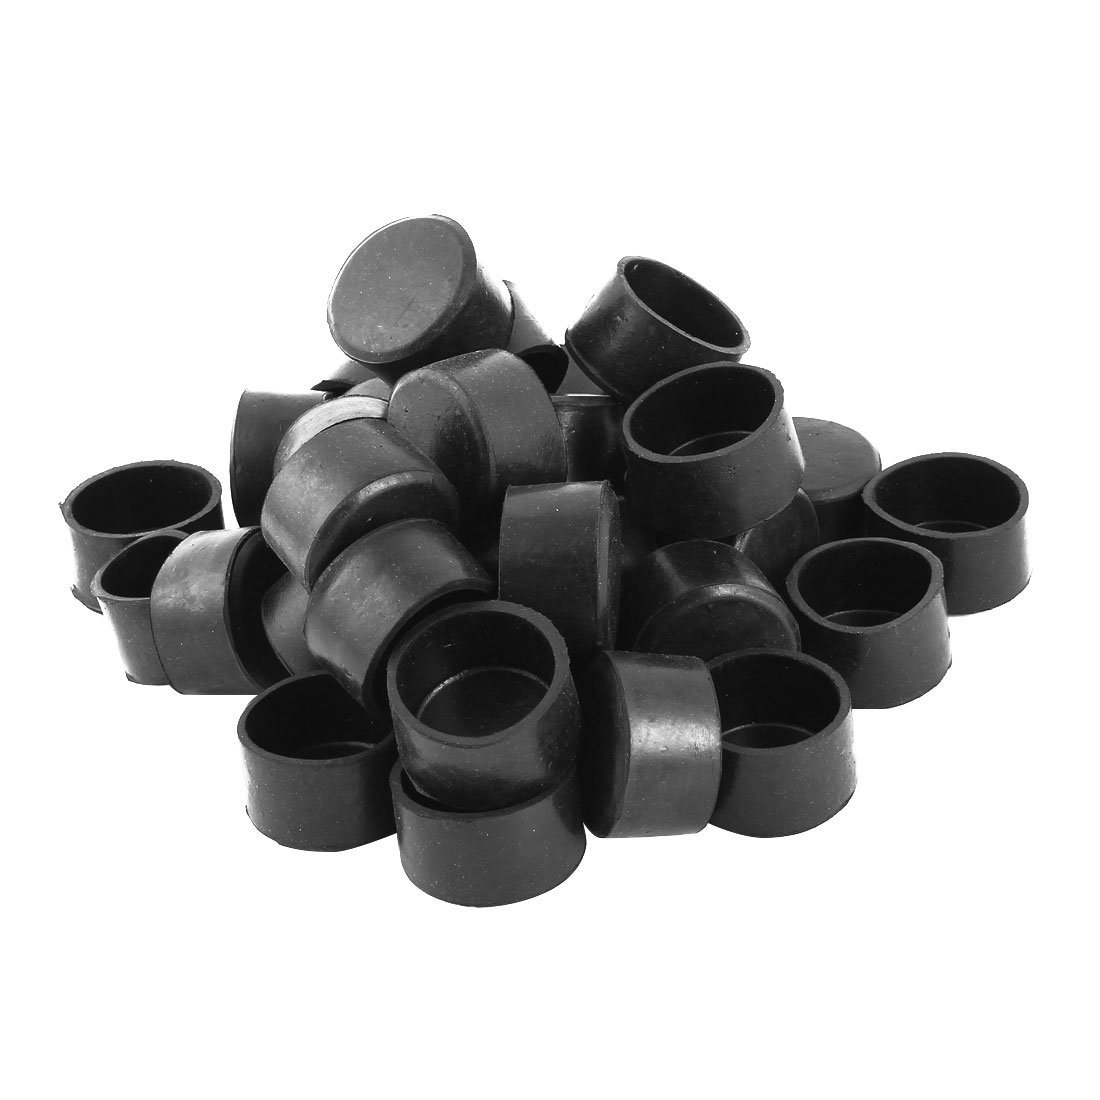 uxcell 36pcs 1 1/2'' 38mm Round Rubber Chair Leg Caps Furniture Table Foot Cover Pads Prevent Scratches Wood Floor Protector